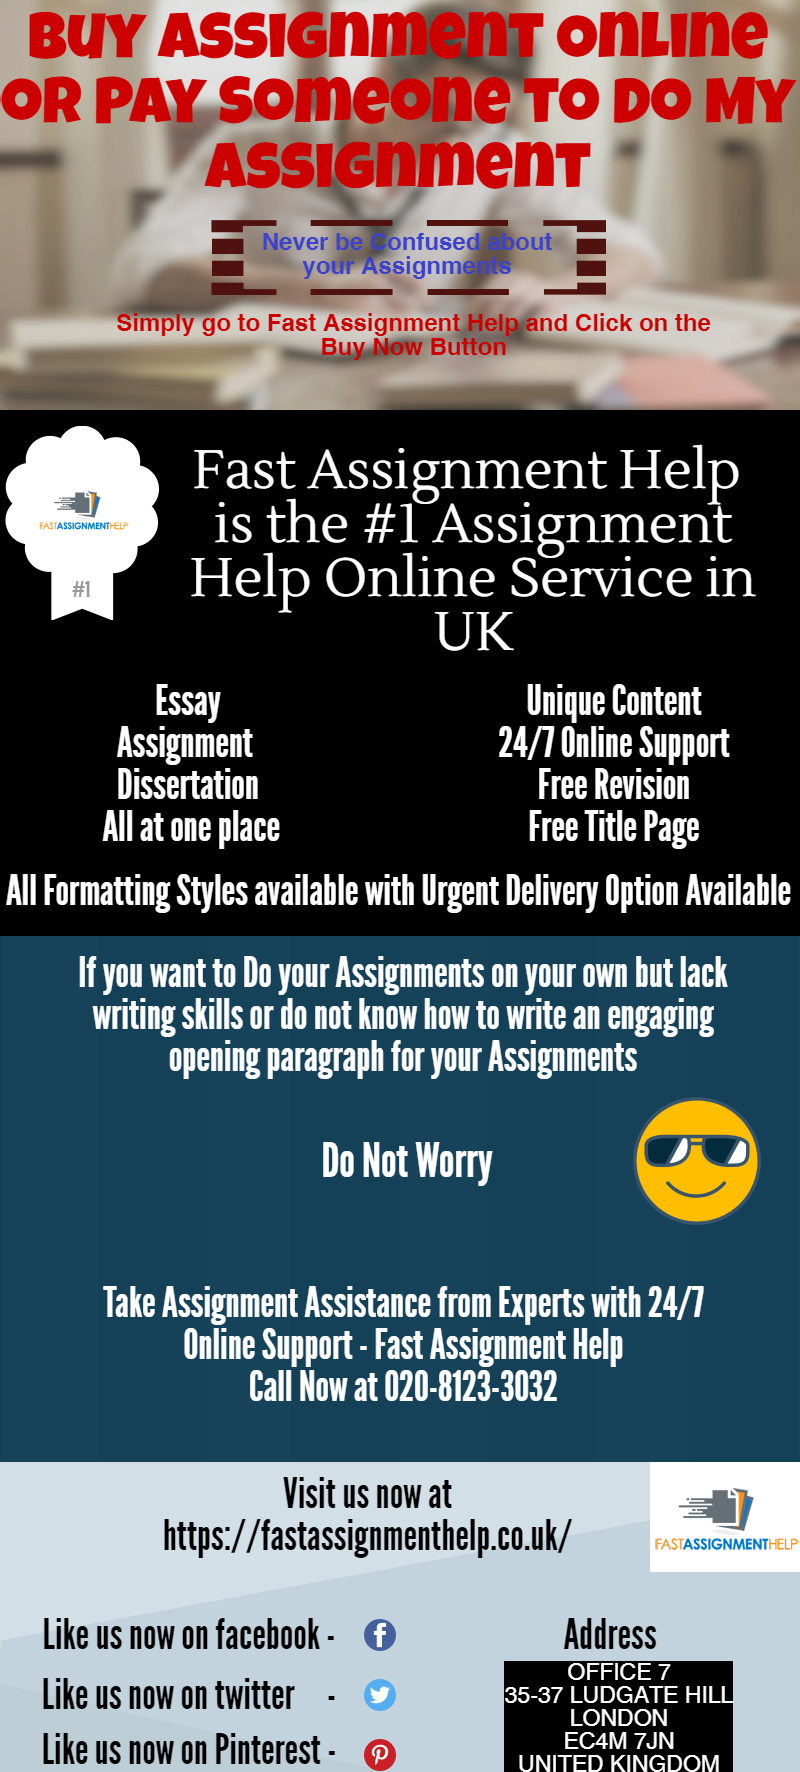 Pay to get assignments done